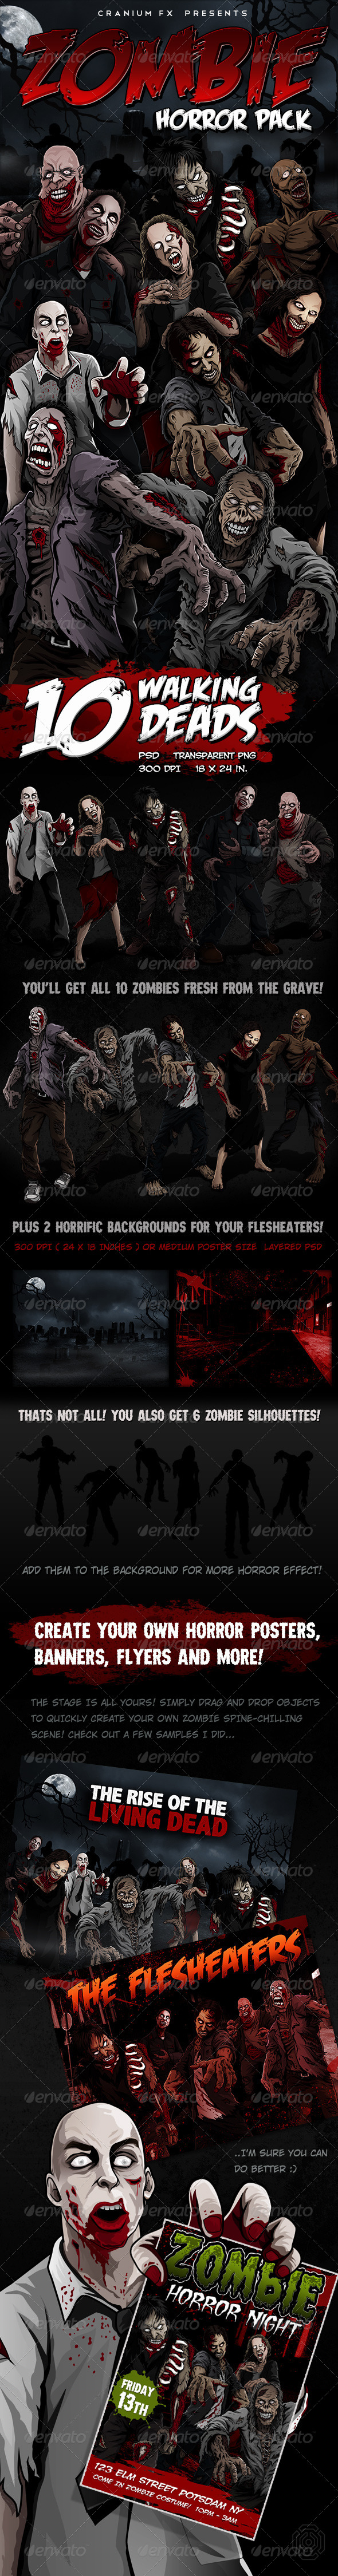 GraphicRiver Zombie Horror Pack 6210930